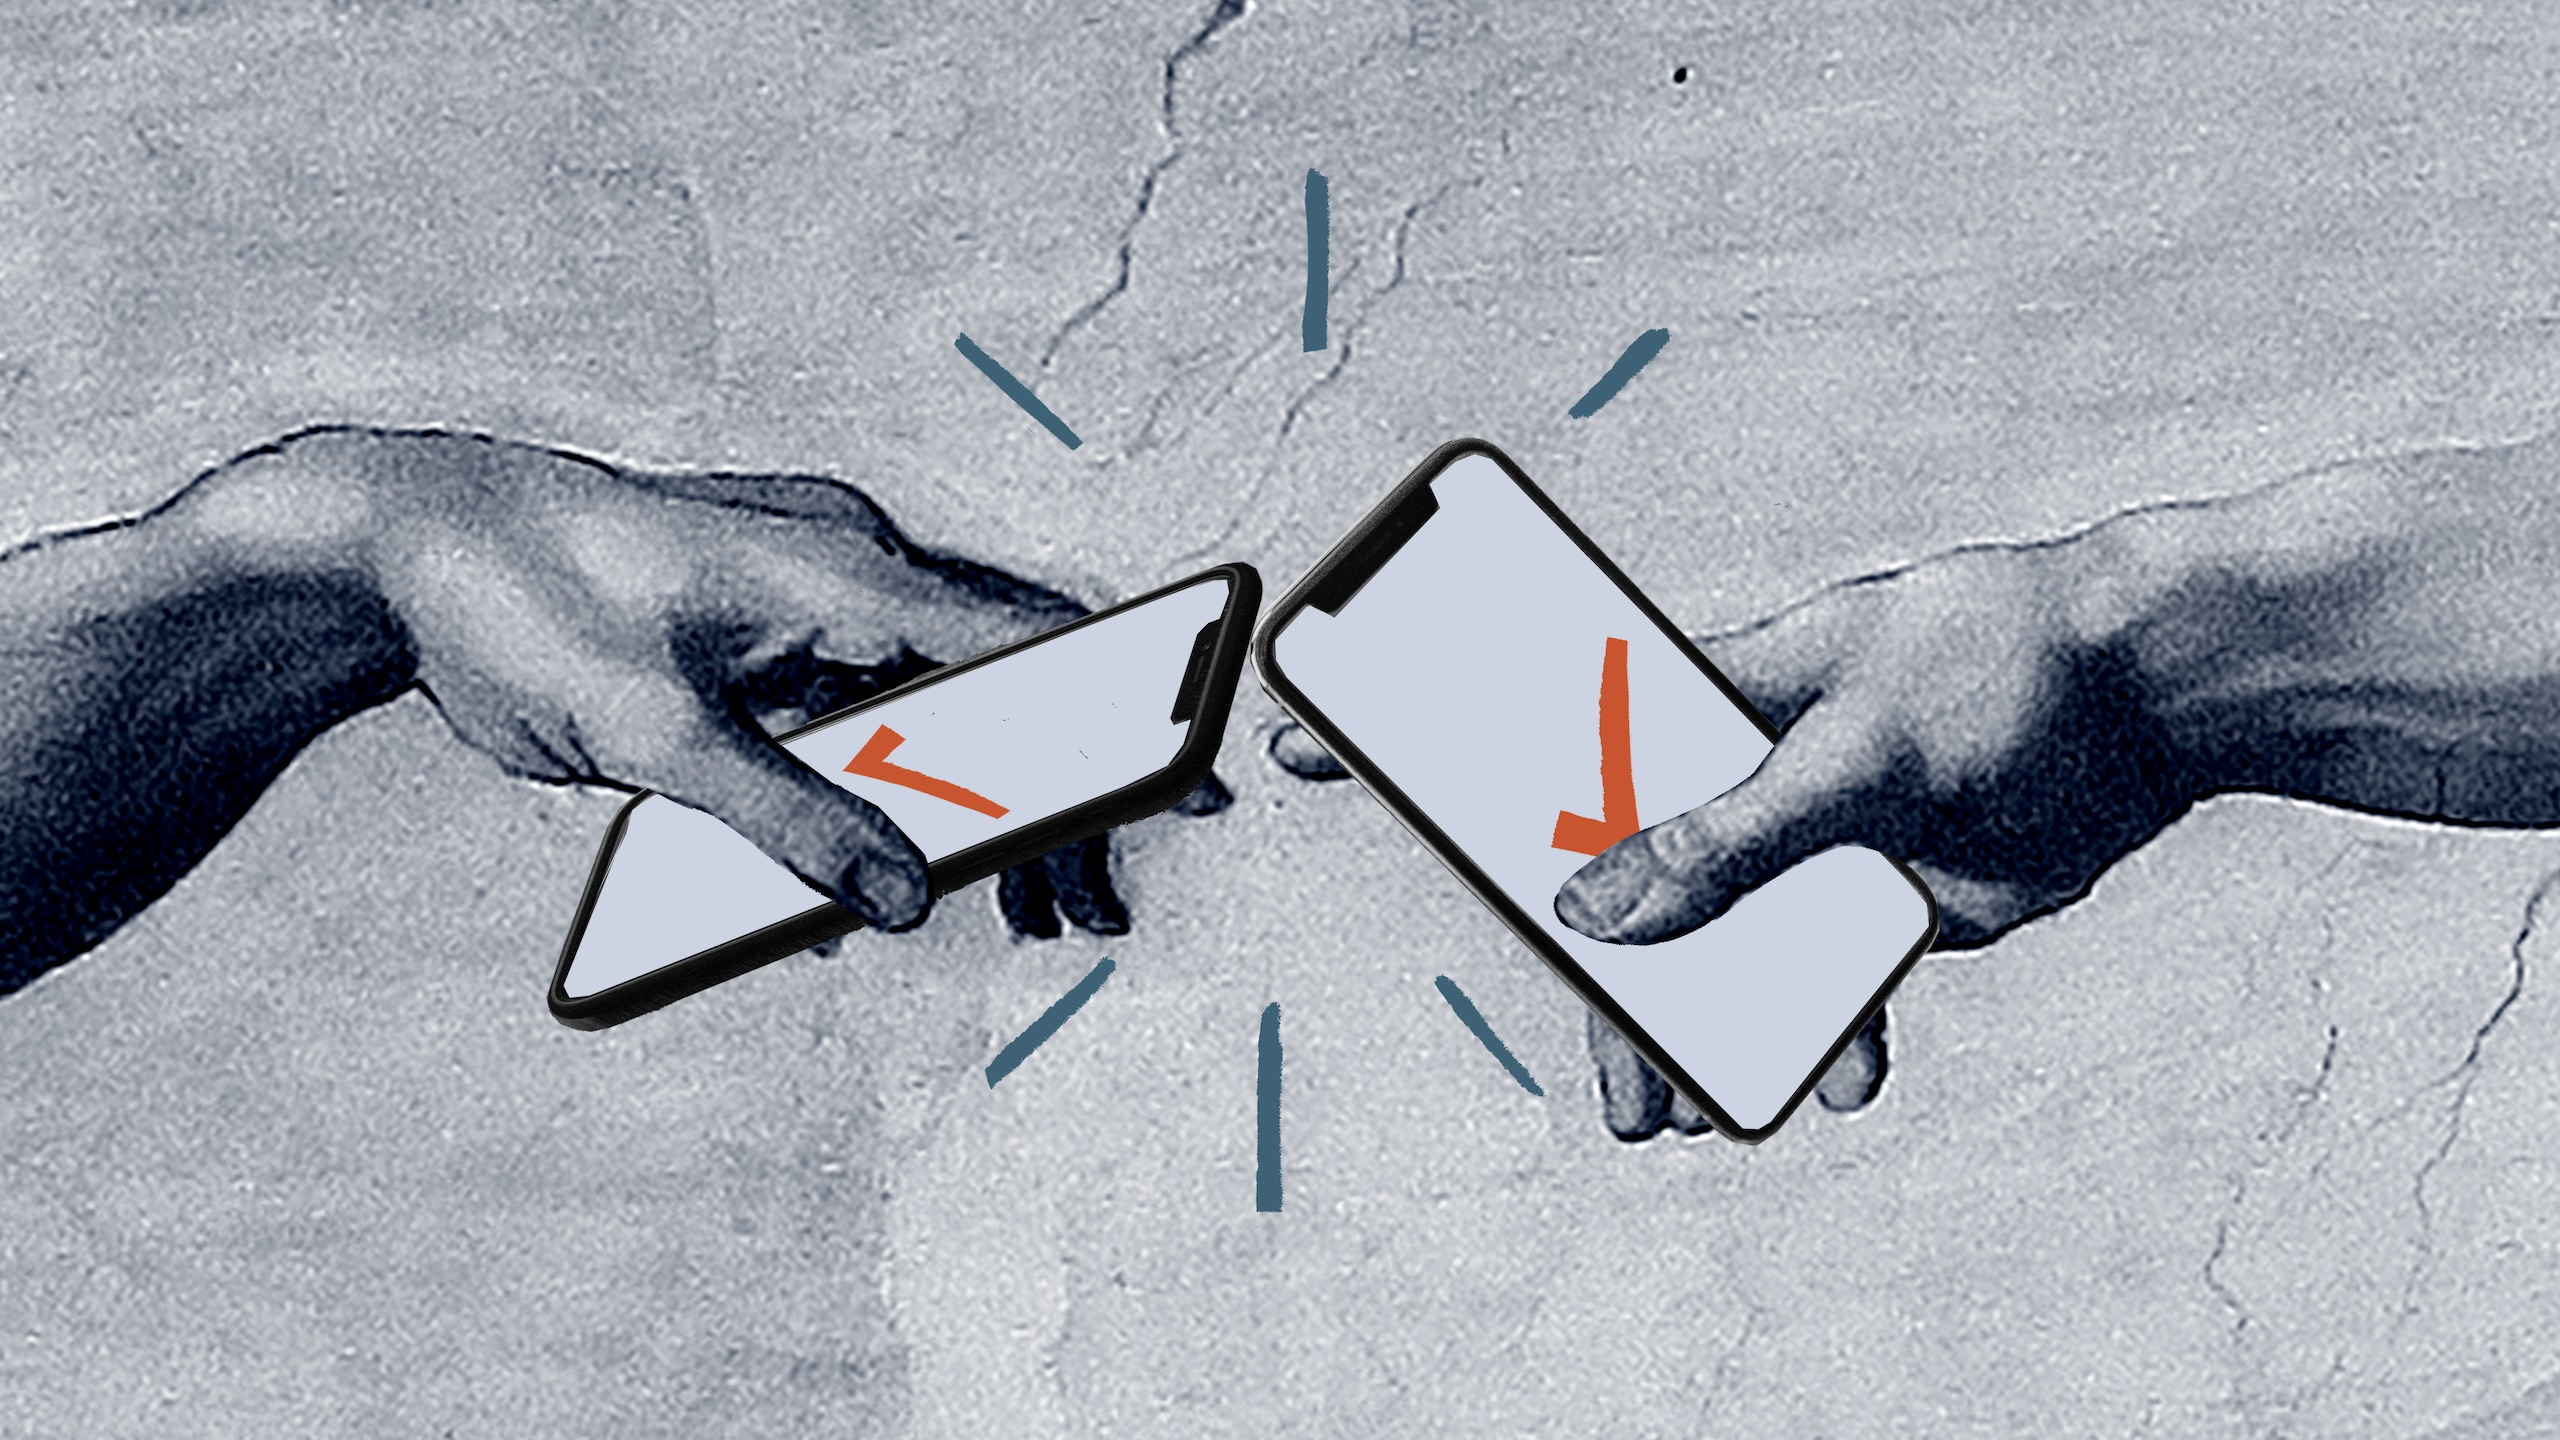 Illustration of hands from Sistine Chapel ceiling holding smartphones with orange ticks on the screen